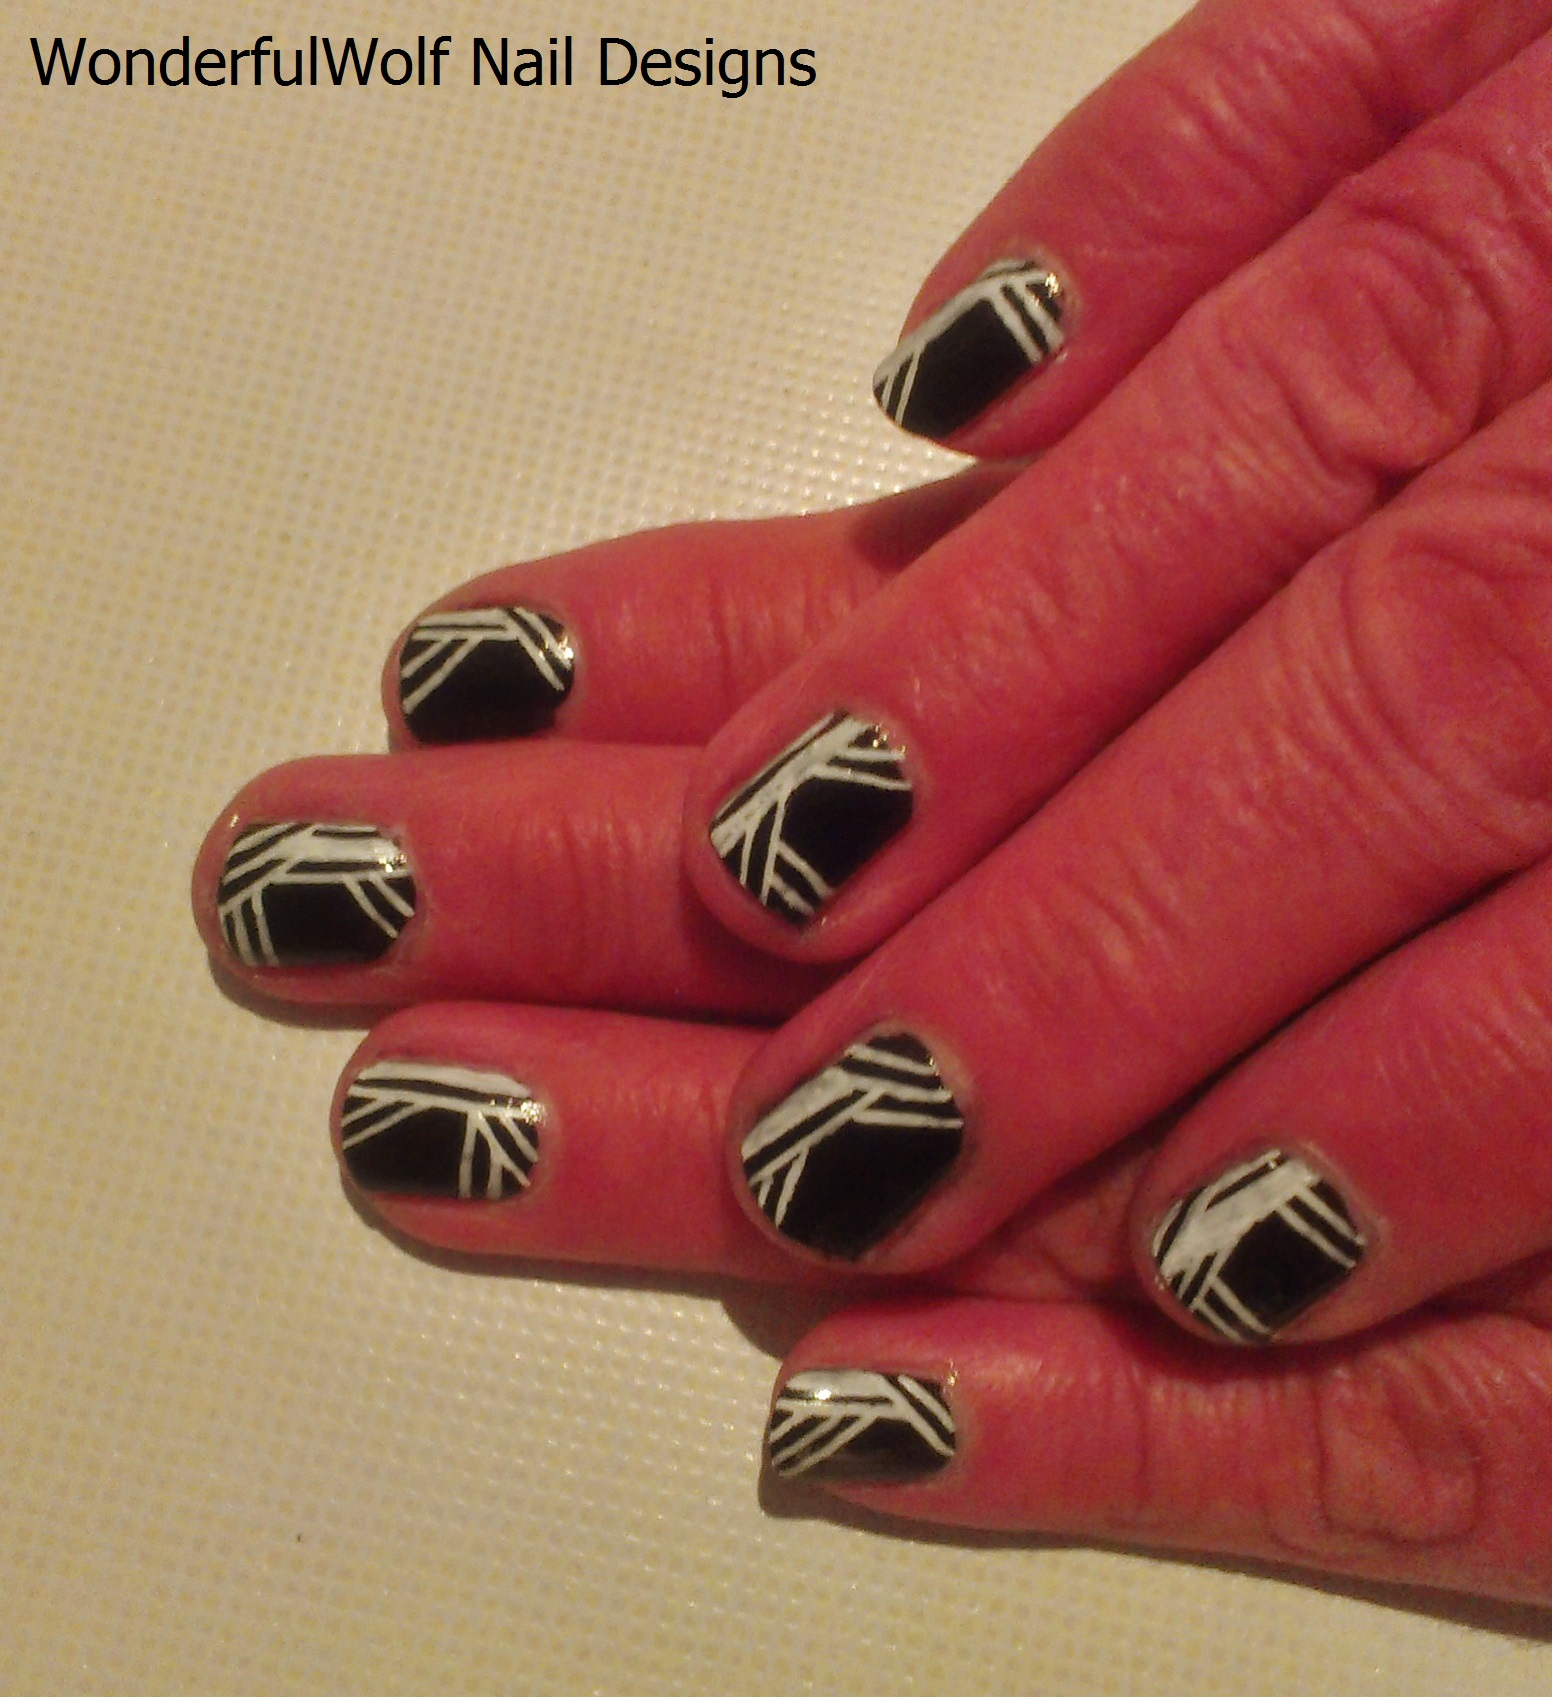 black and white nail art – wonderfulwolf